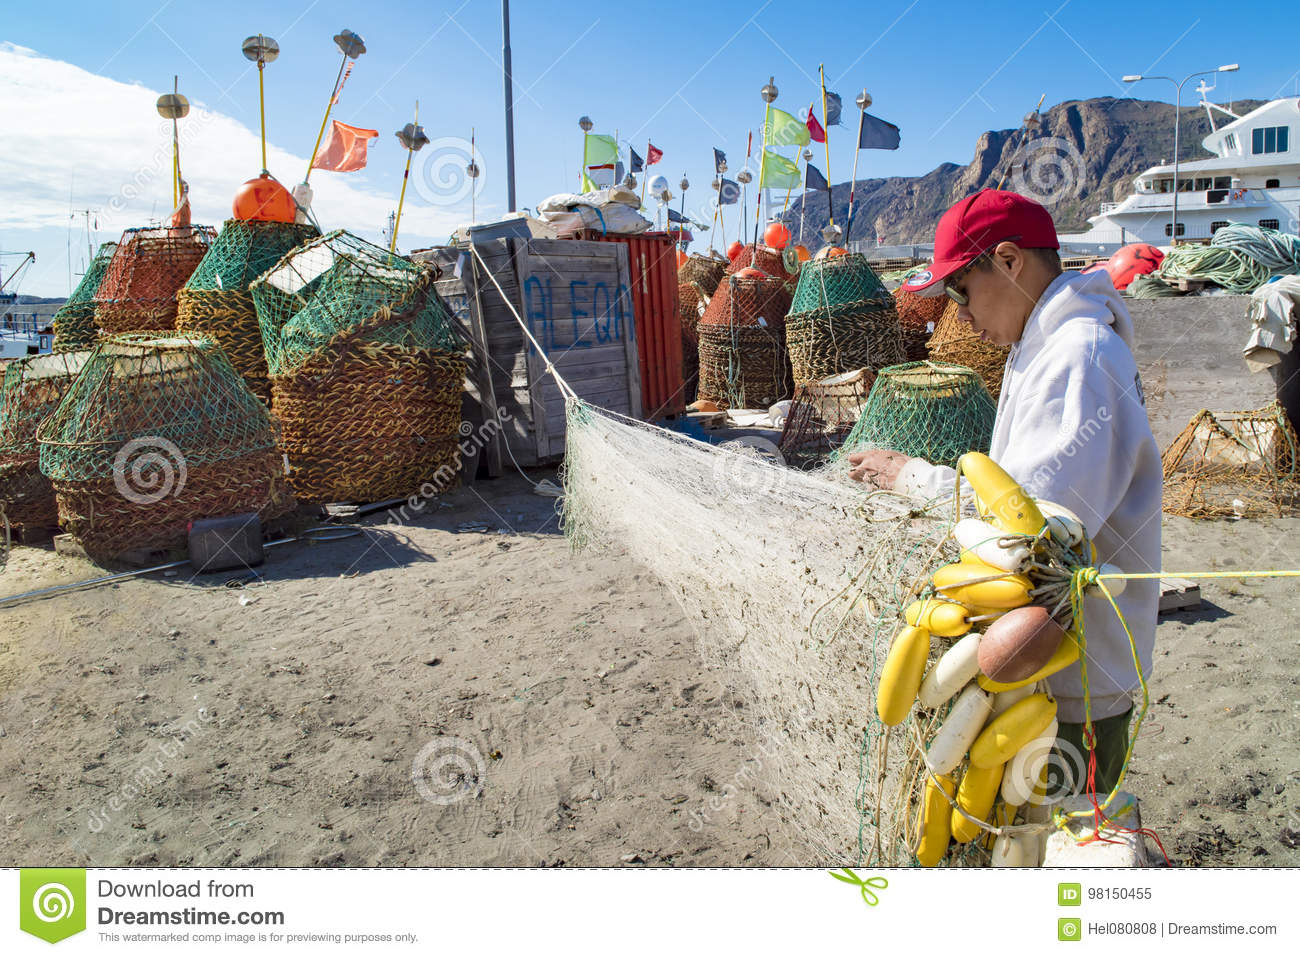 Greenlandic Fisherman preparing nets